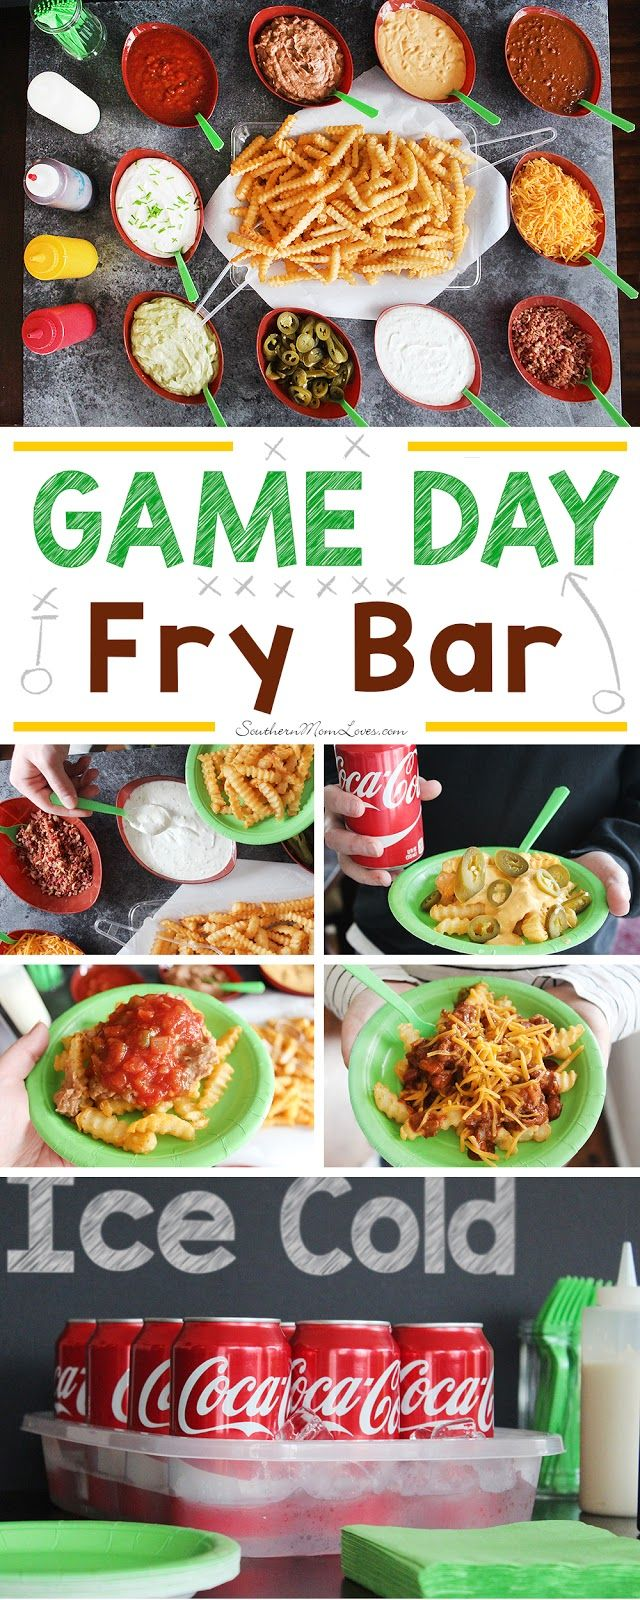 With Game Day weekends here again, it's time for some fun and delicious ideas for feeding your rowdy crowd while they watch the game. Everyone loves french fries and I had an idea for a 'Make Your Favorite' Fry Bar that was a huge success this past weekend. #DGUnitedByFootball [ad]